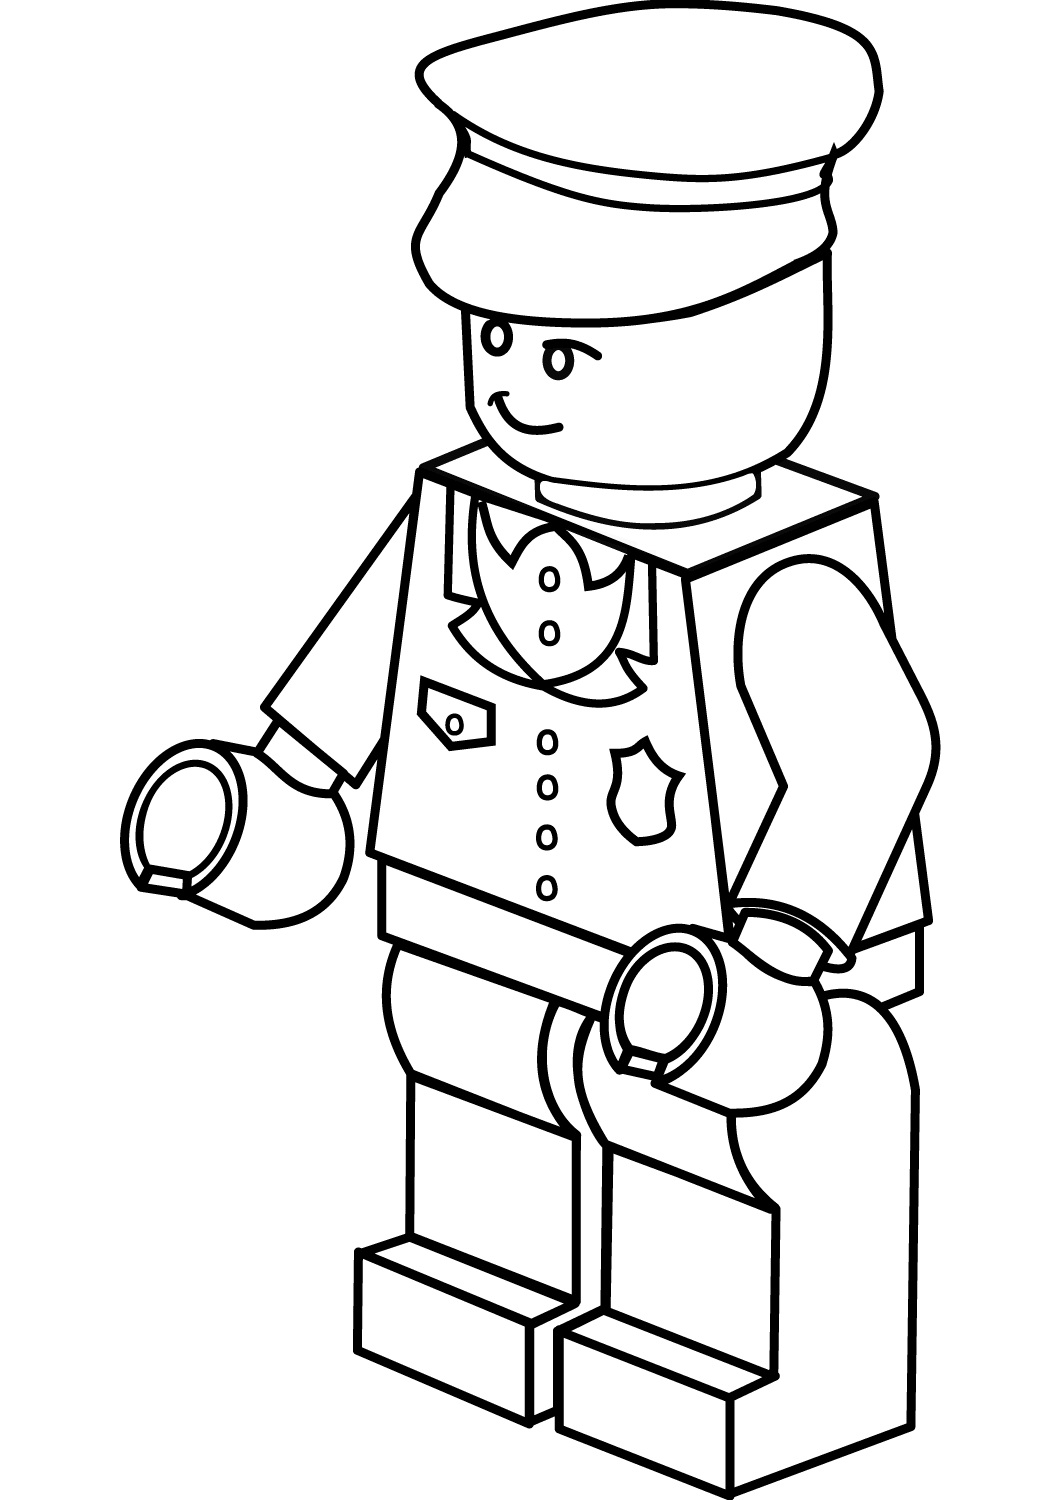 Batman Coloring Page Lego Batman Coloring Pages 40 For Batman Lego ... | 1500x1060